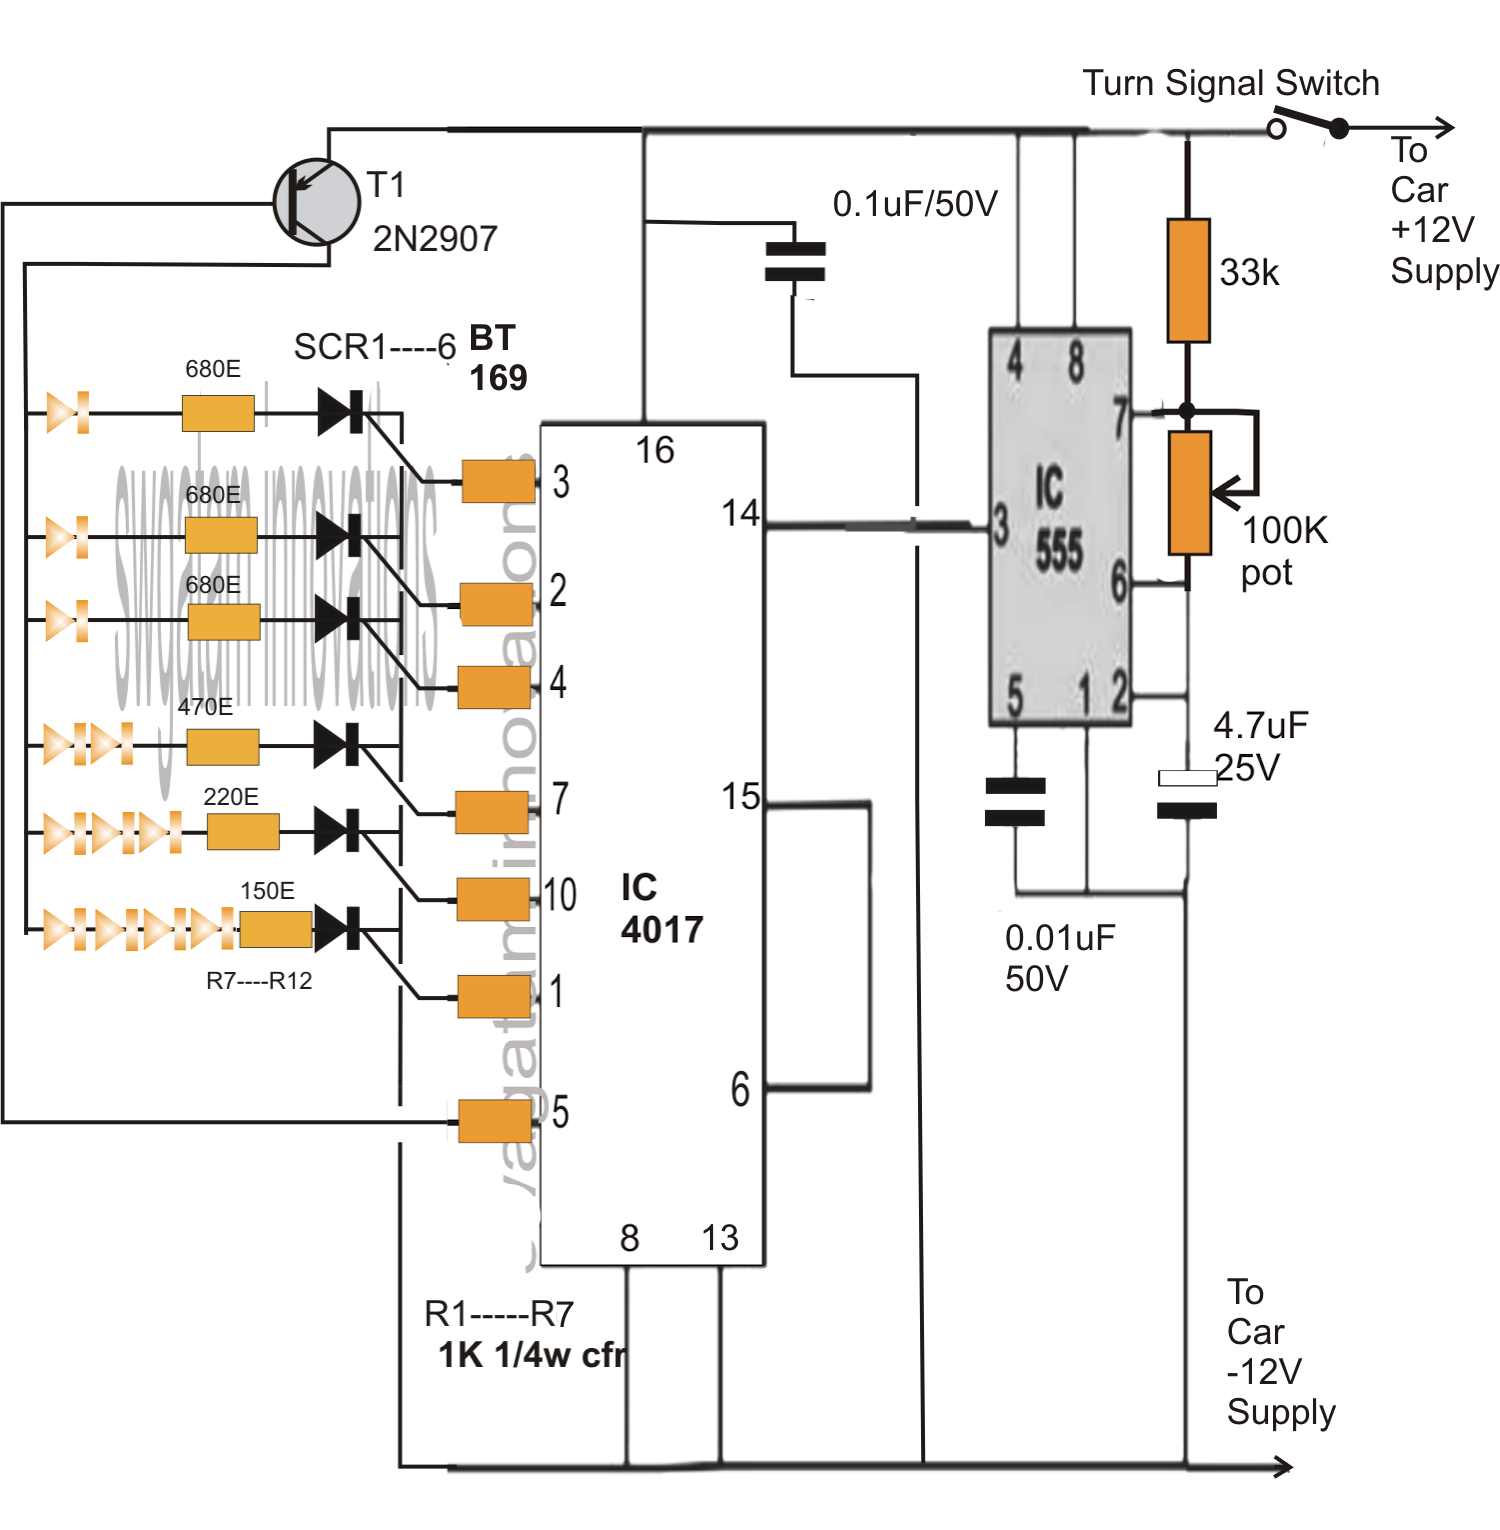 sequential bar graph turn light indicator circuit for car sequential bar graph turn light indicator circuit for car